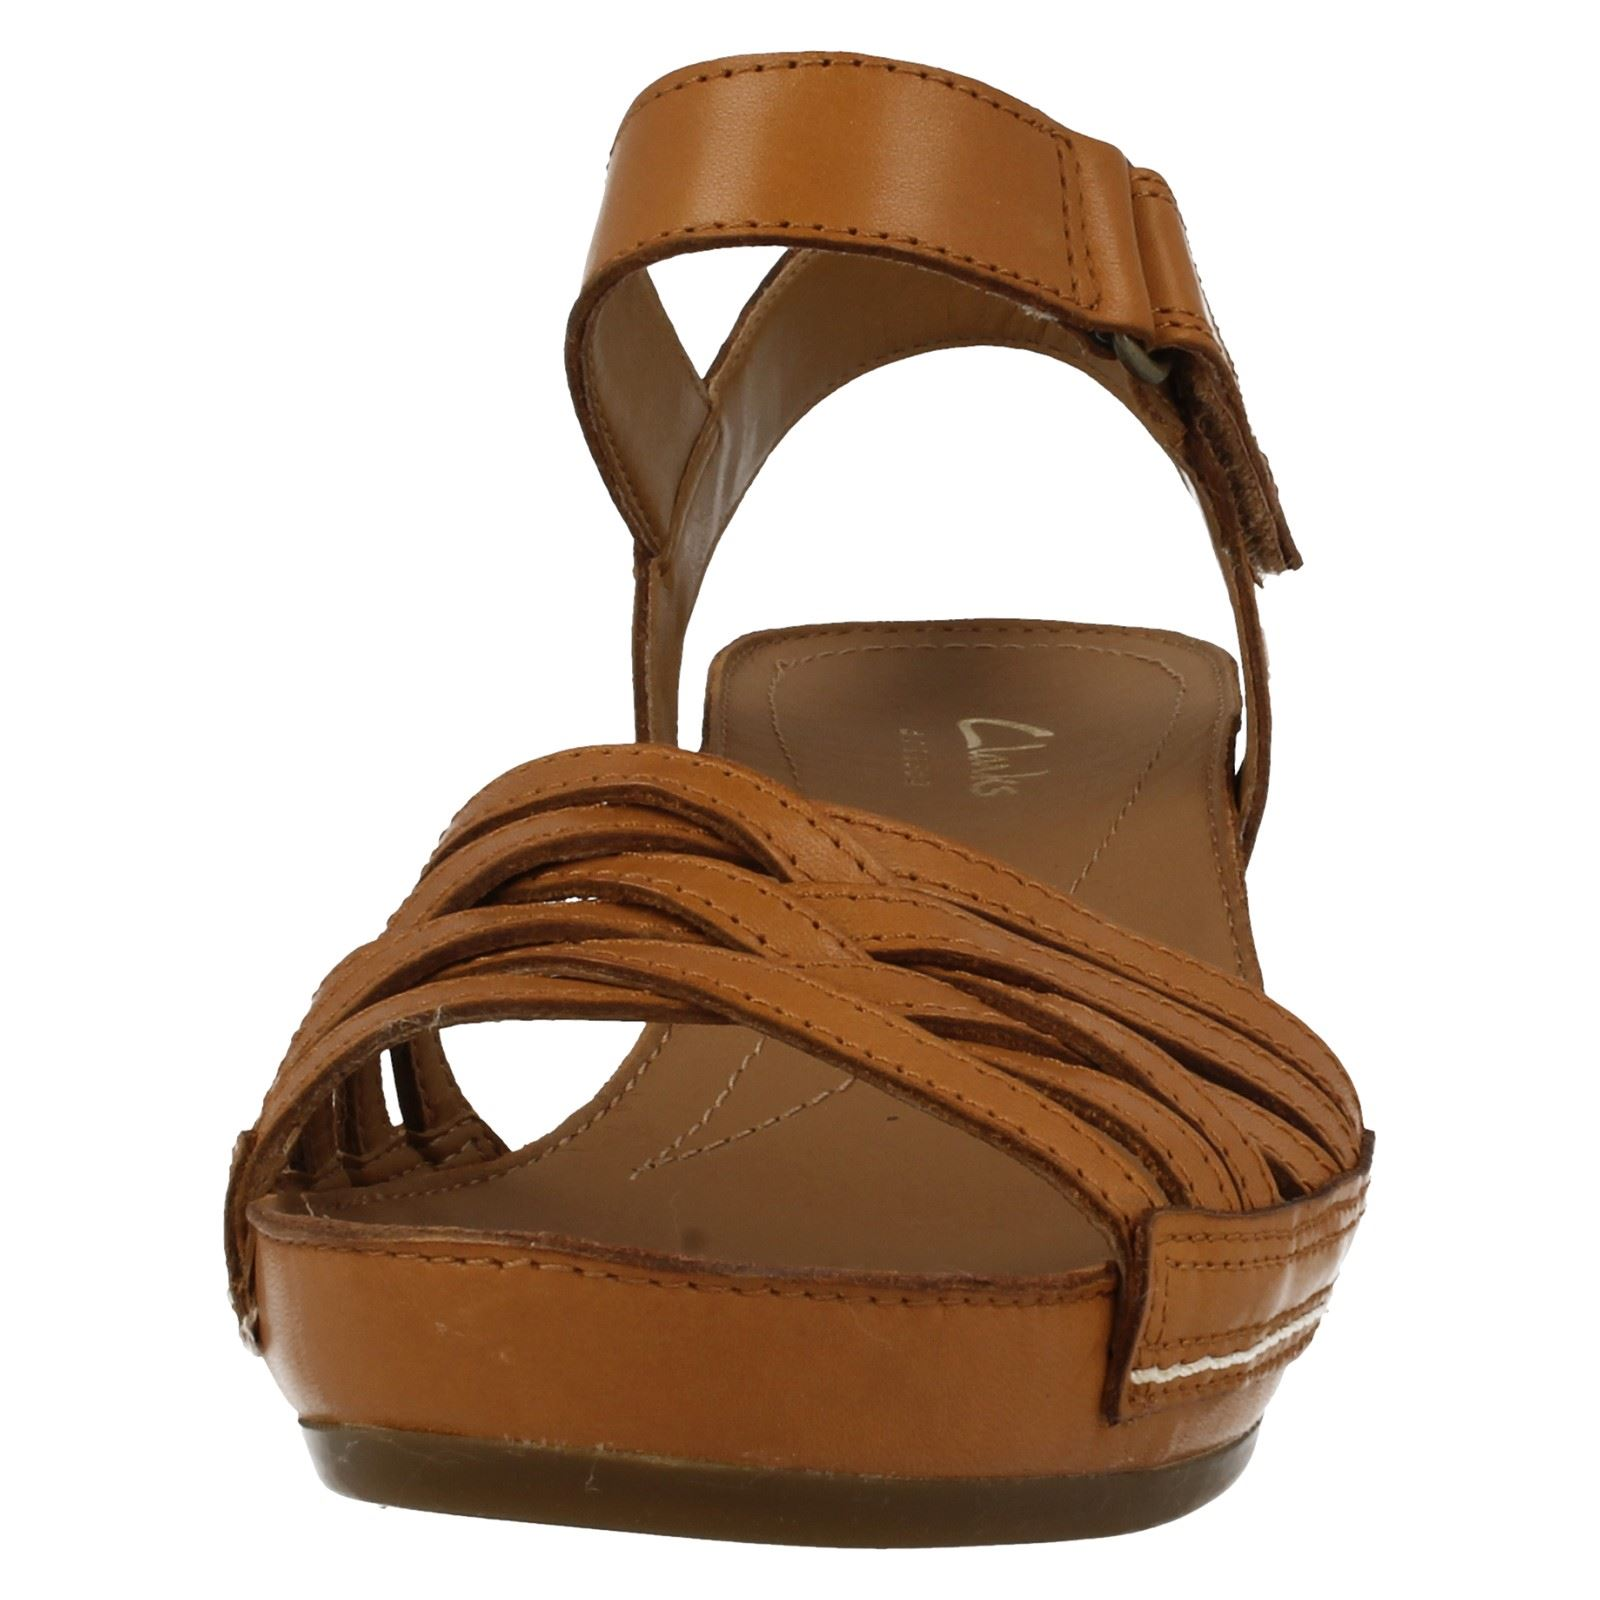 382d775320a0f Ladies-Clarks-Wedge-Sandals-Rusty-Wish thumbnail 8